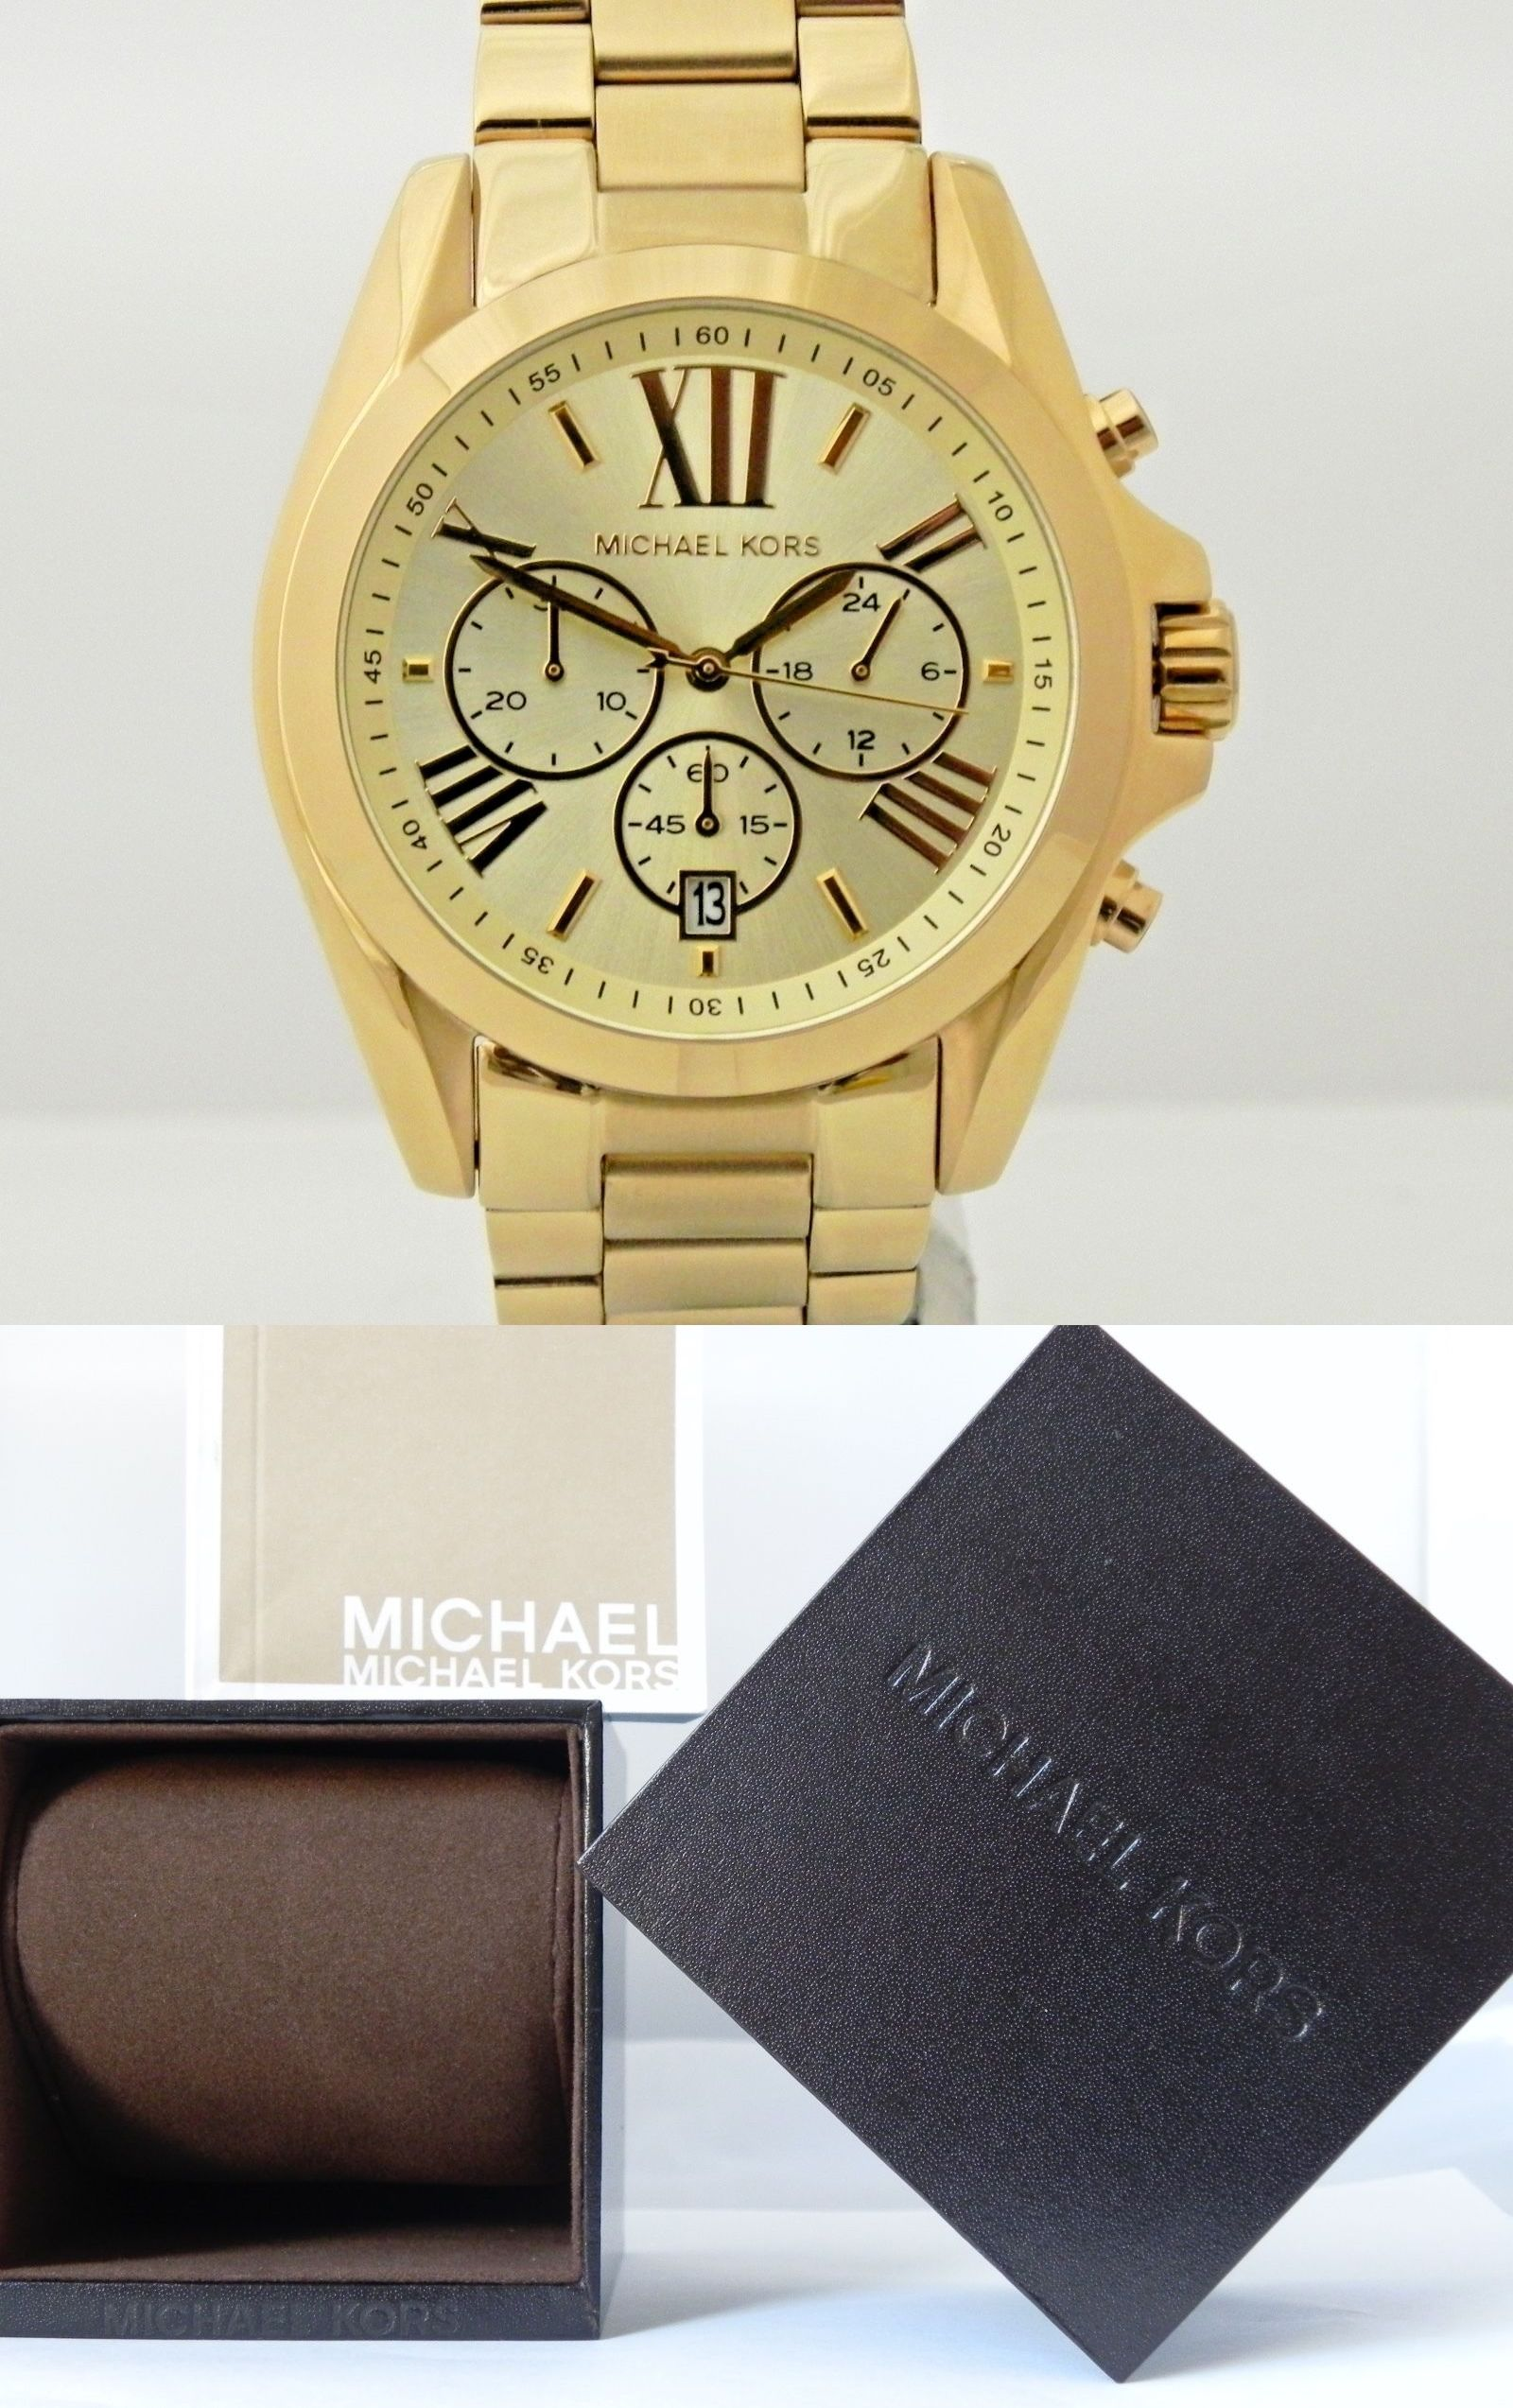 7de22e4bc758 Parts and Accessories 51021  Michael Kors Mk5605 Unisex Bradshaw Champagne  Chronograph Dial Gold Tone Watch -  BUY IT NOW ONLY   130 on eBay!